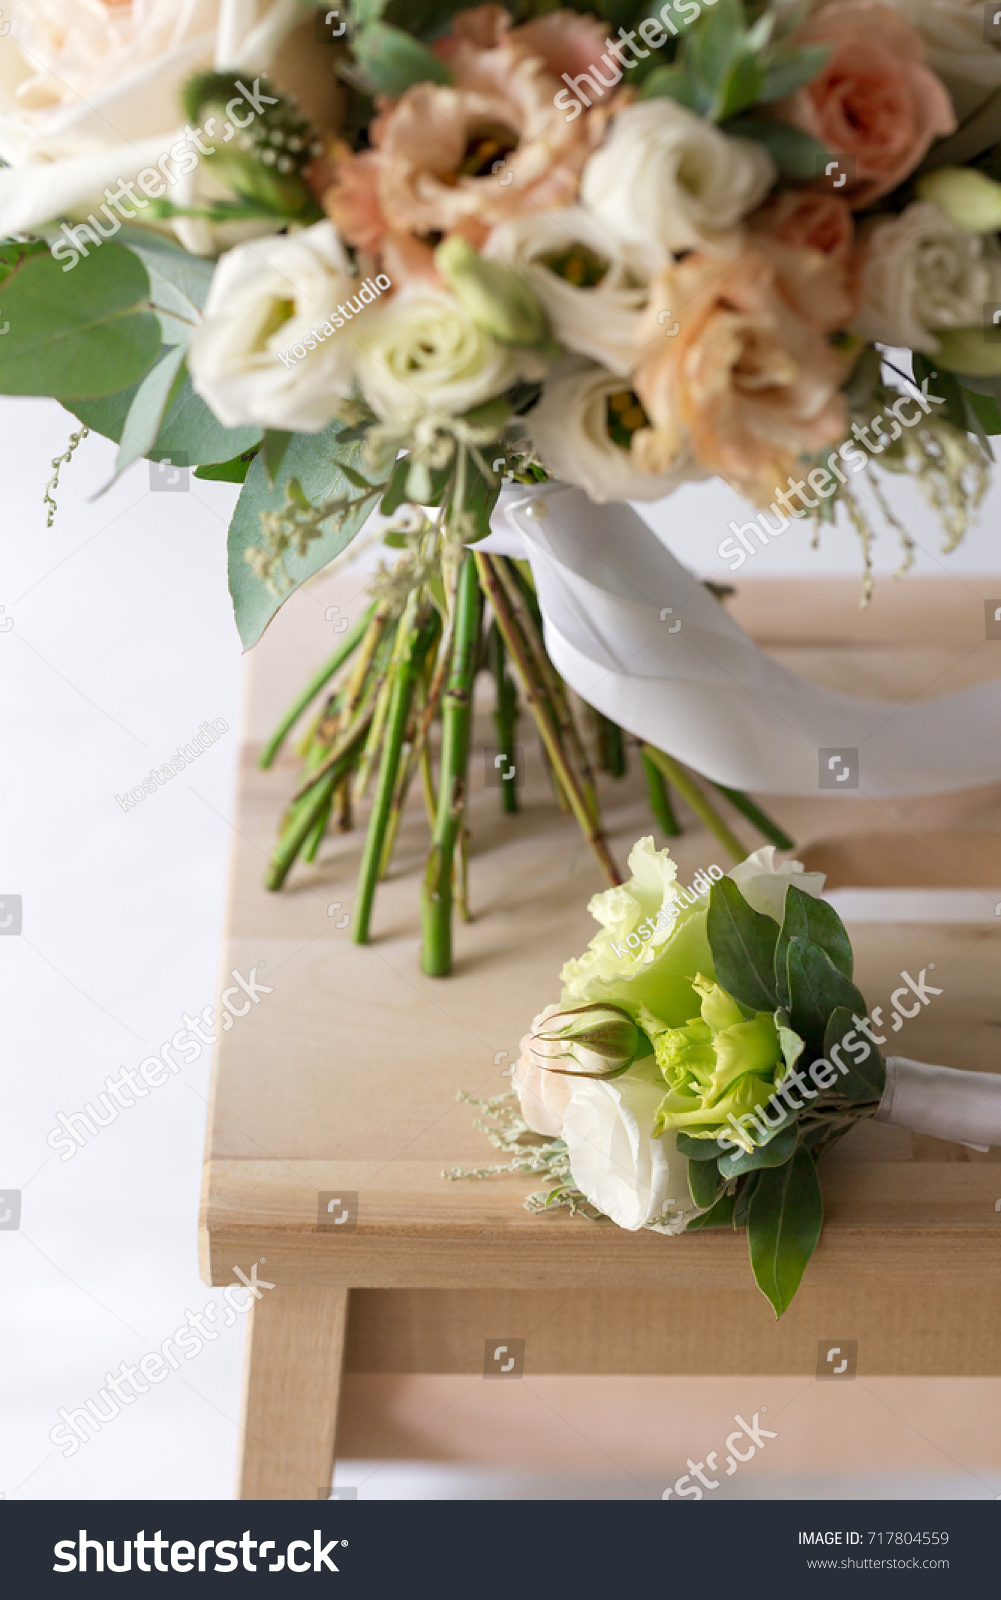 Bridal bouquet a simple bouquet of flowers and greens ez canvas id 717804559 izmirmasajfo